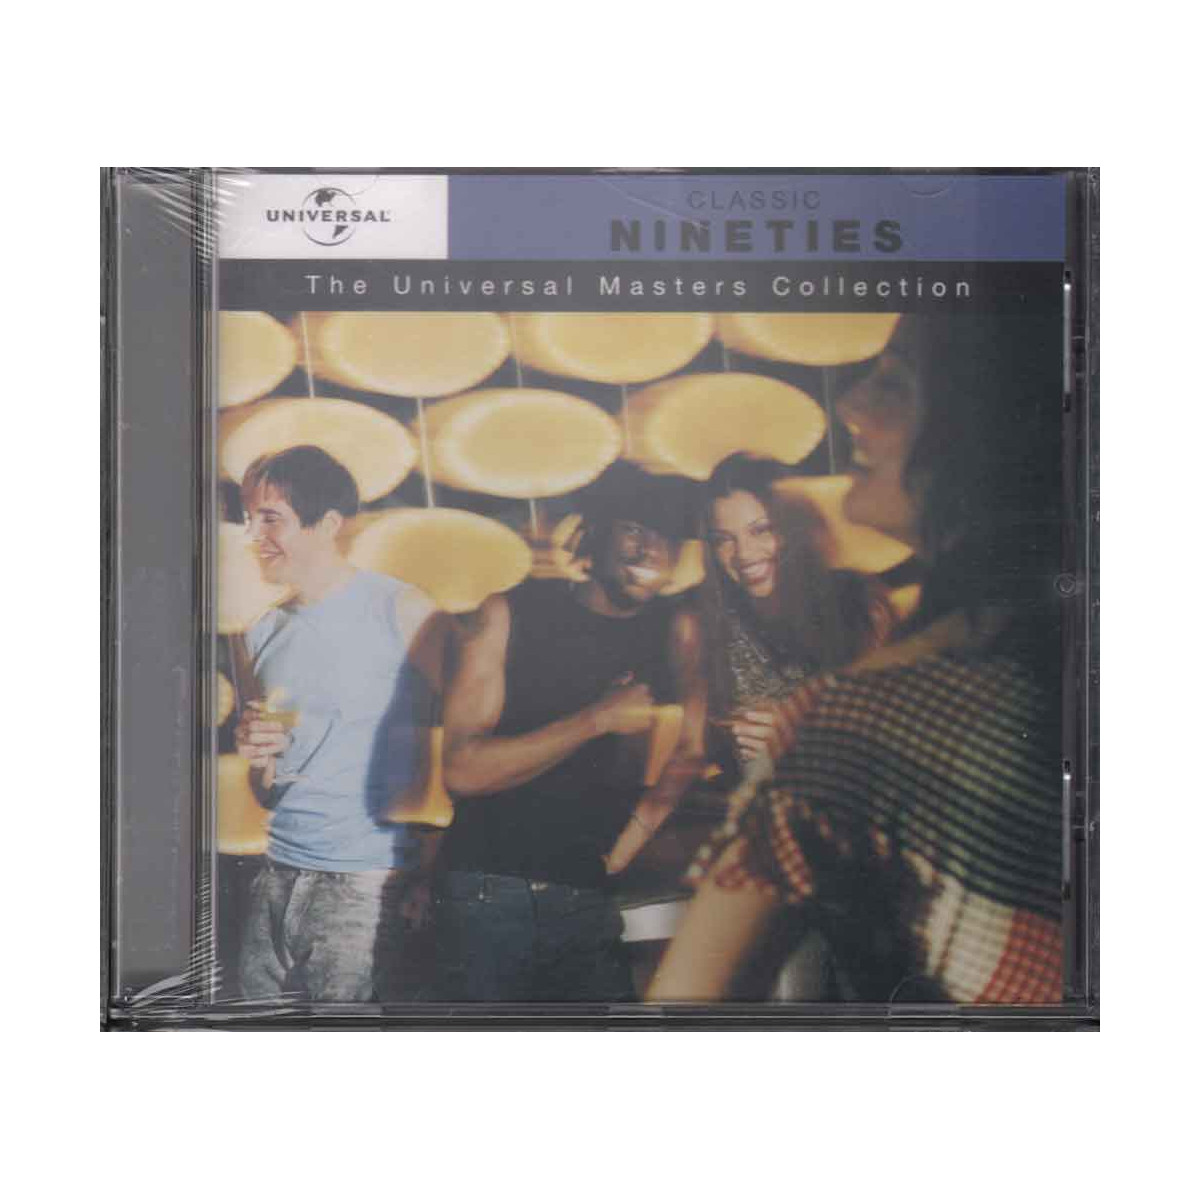 AA.VV.  CD Classic Nineties - The Universal Masters Coll Sigillato 0602498111901